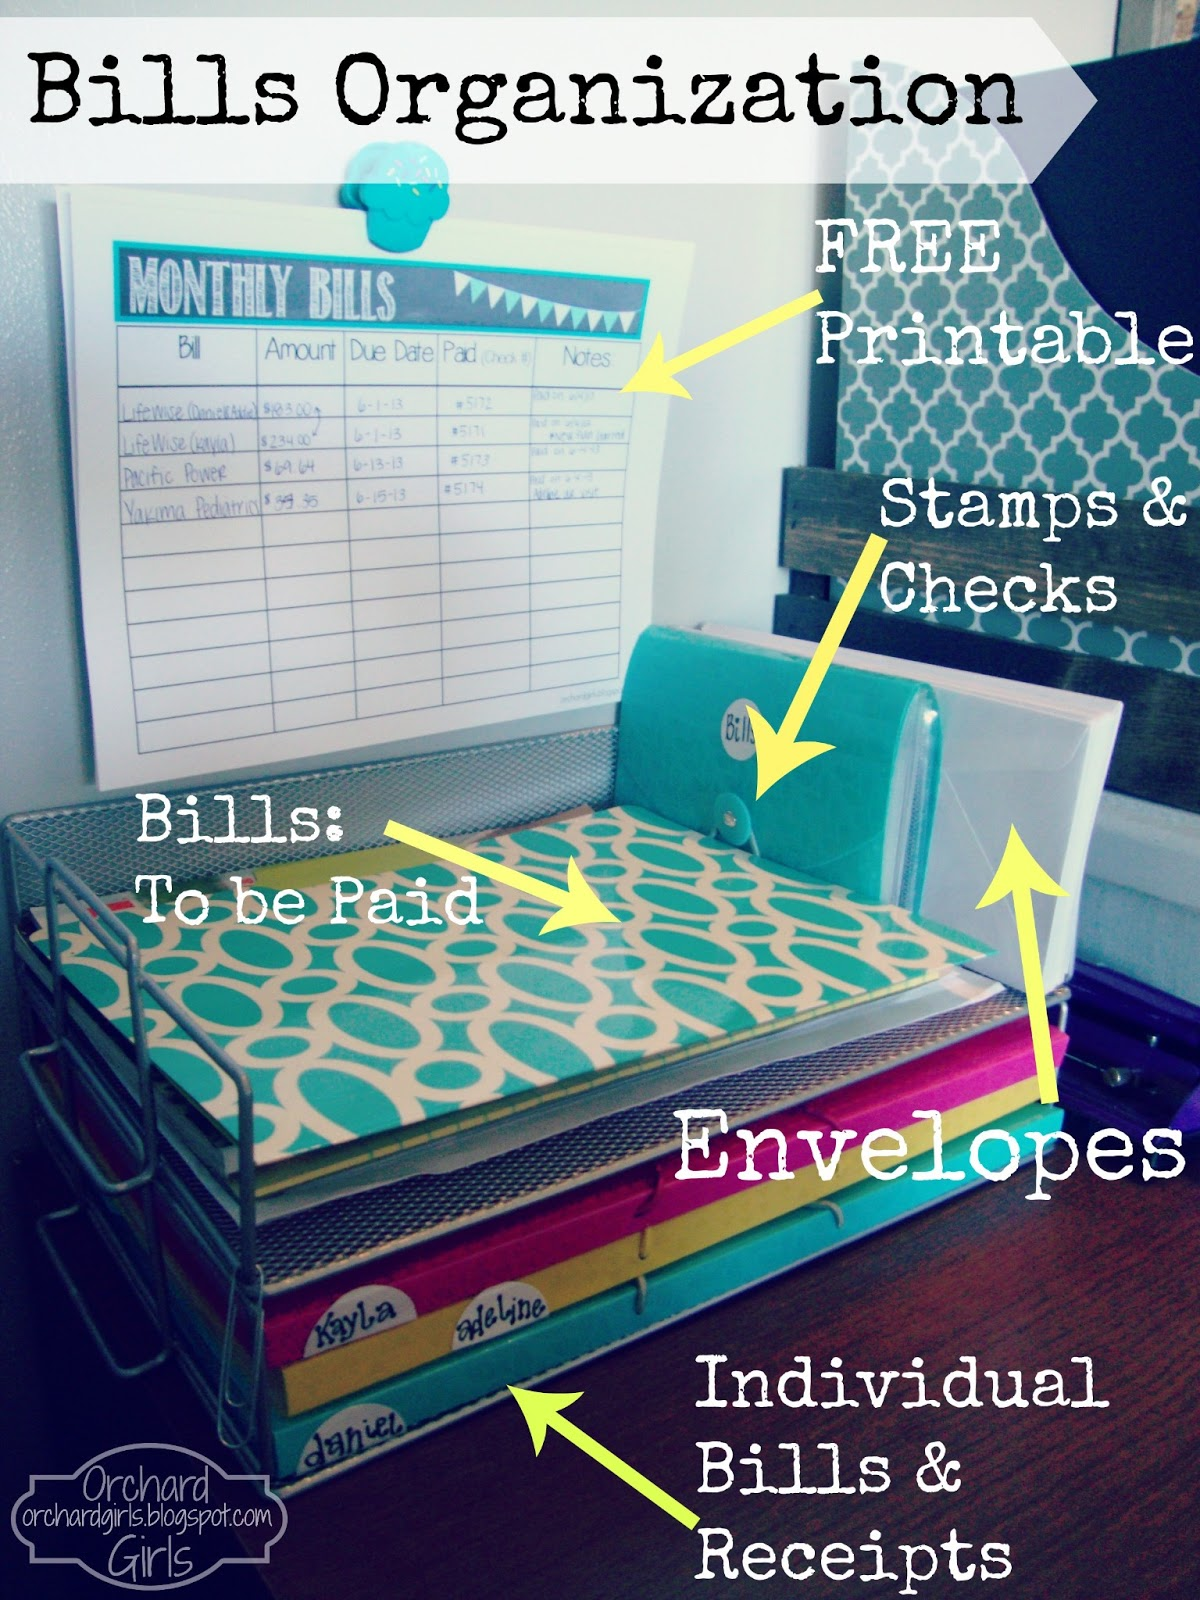 Orchard Girls Monthly Bills Organization Station Free